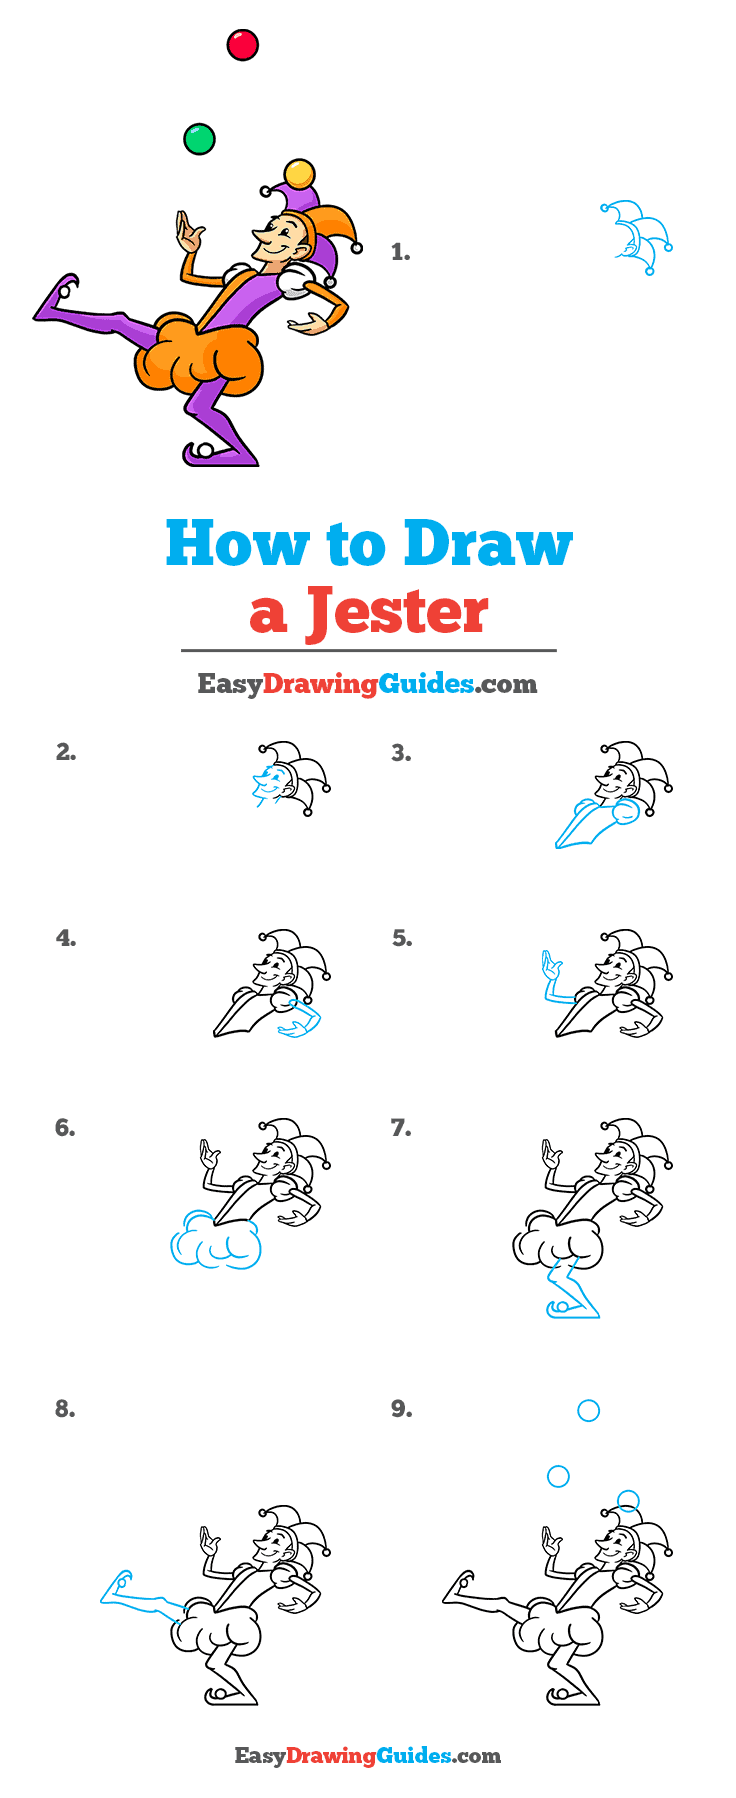 How to Draw a Jester Step by Step Tutorial Image